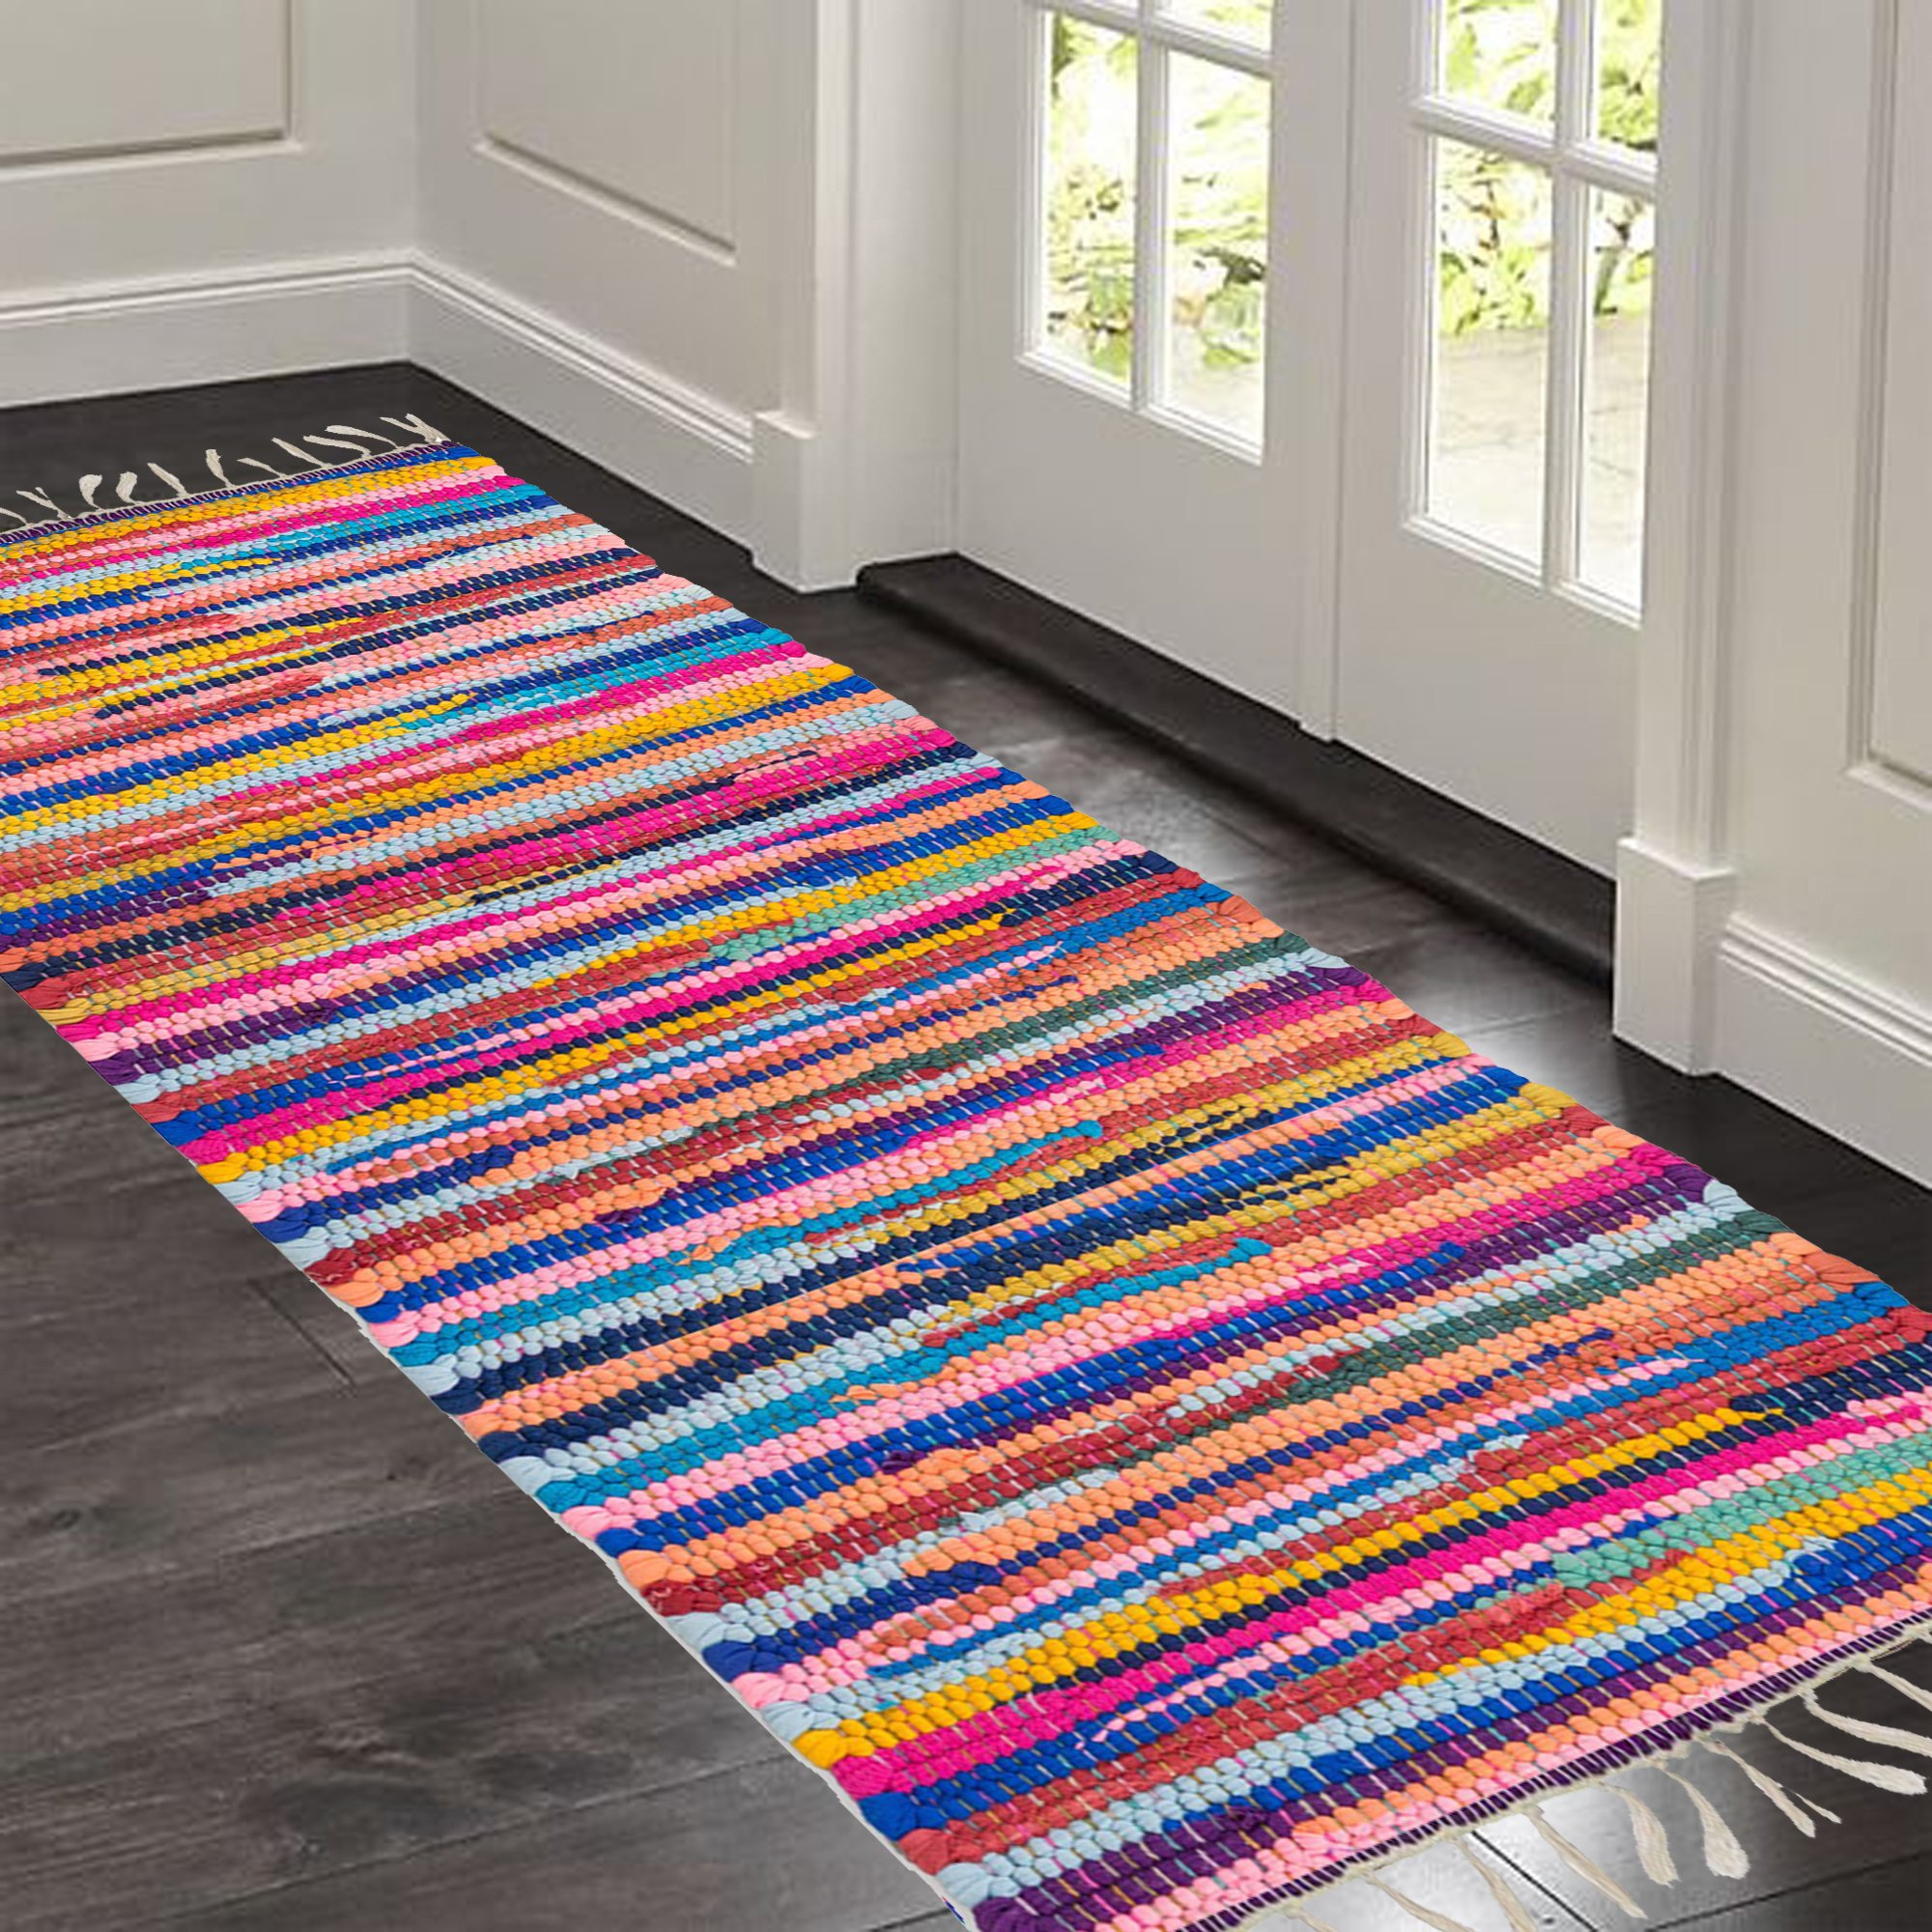 Hand Woven Multi Chindi Rug for Kitchen-Livingroom-Bedroom - 2 X 5 Feet